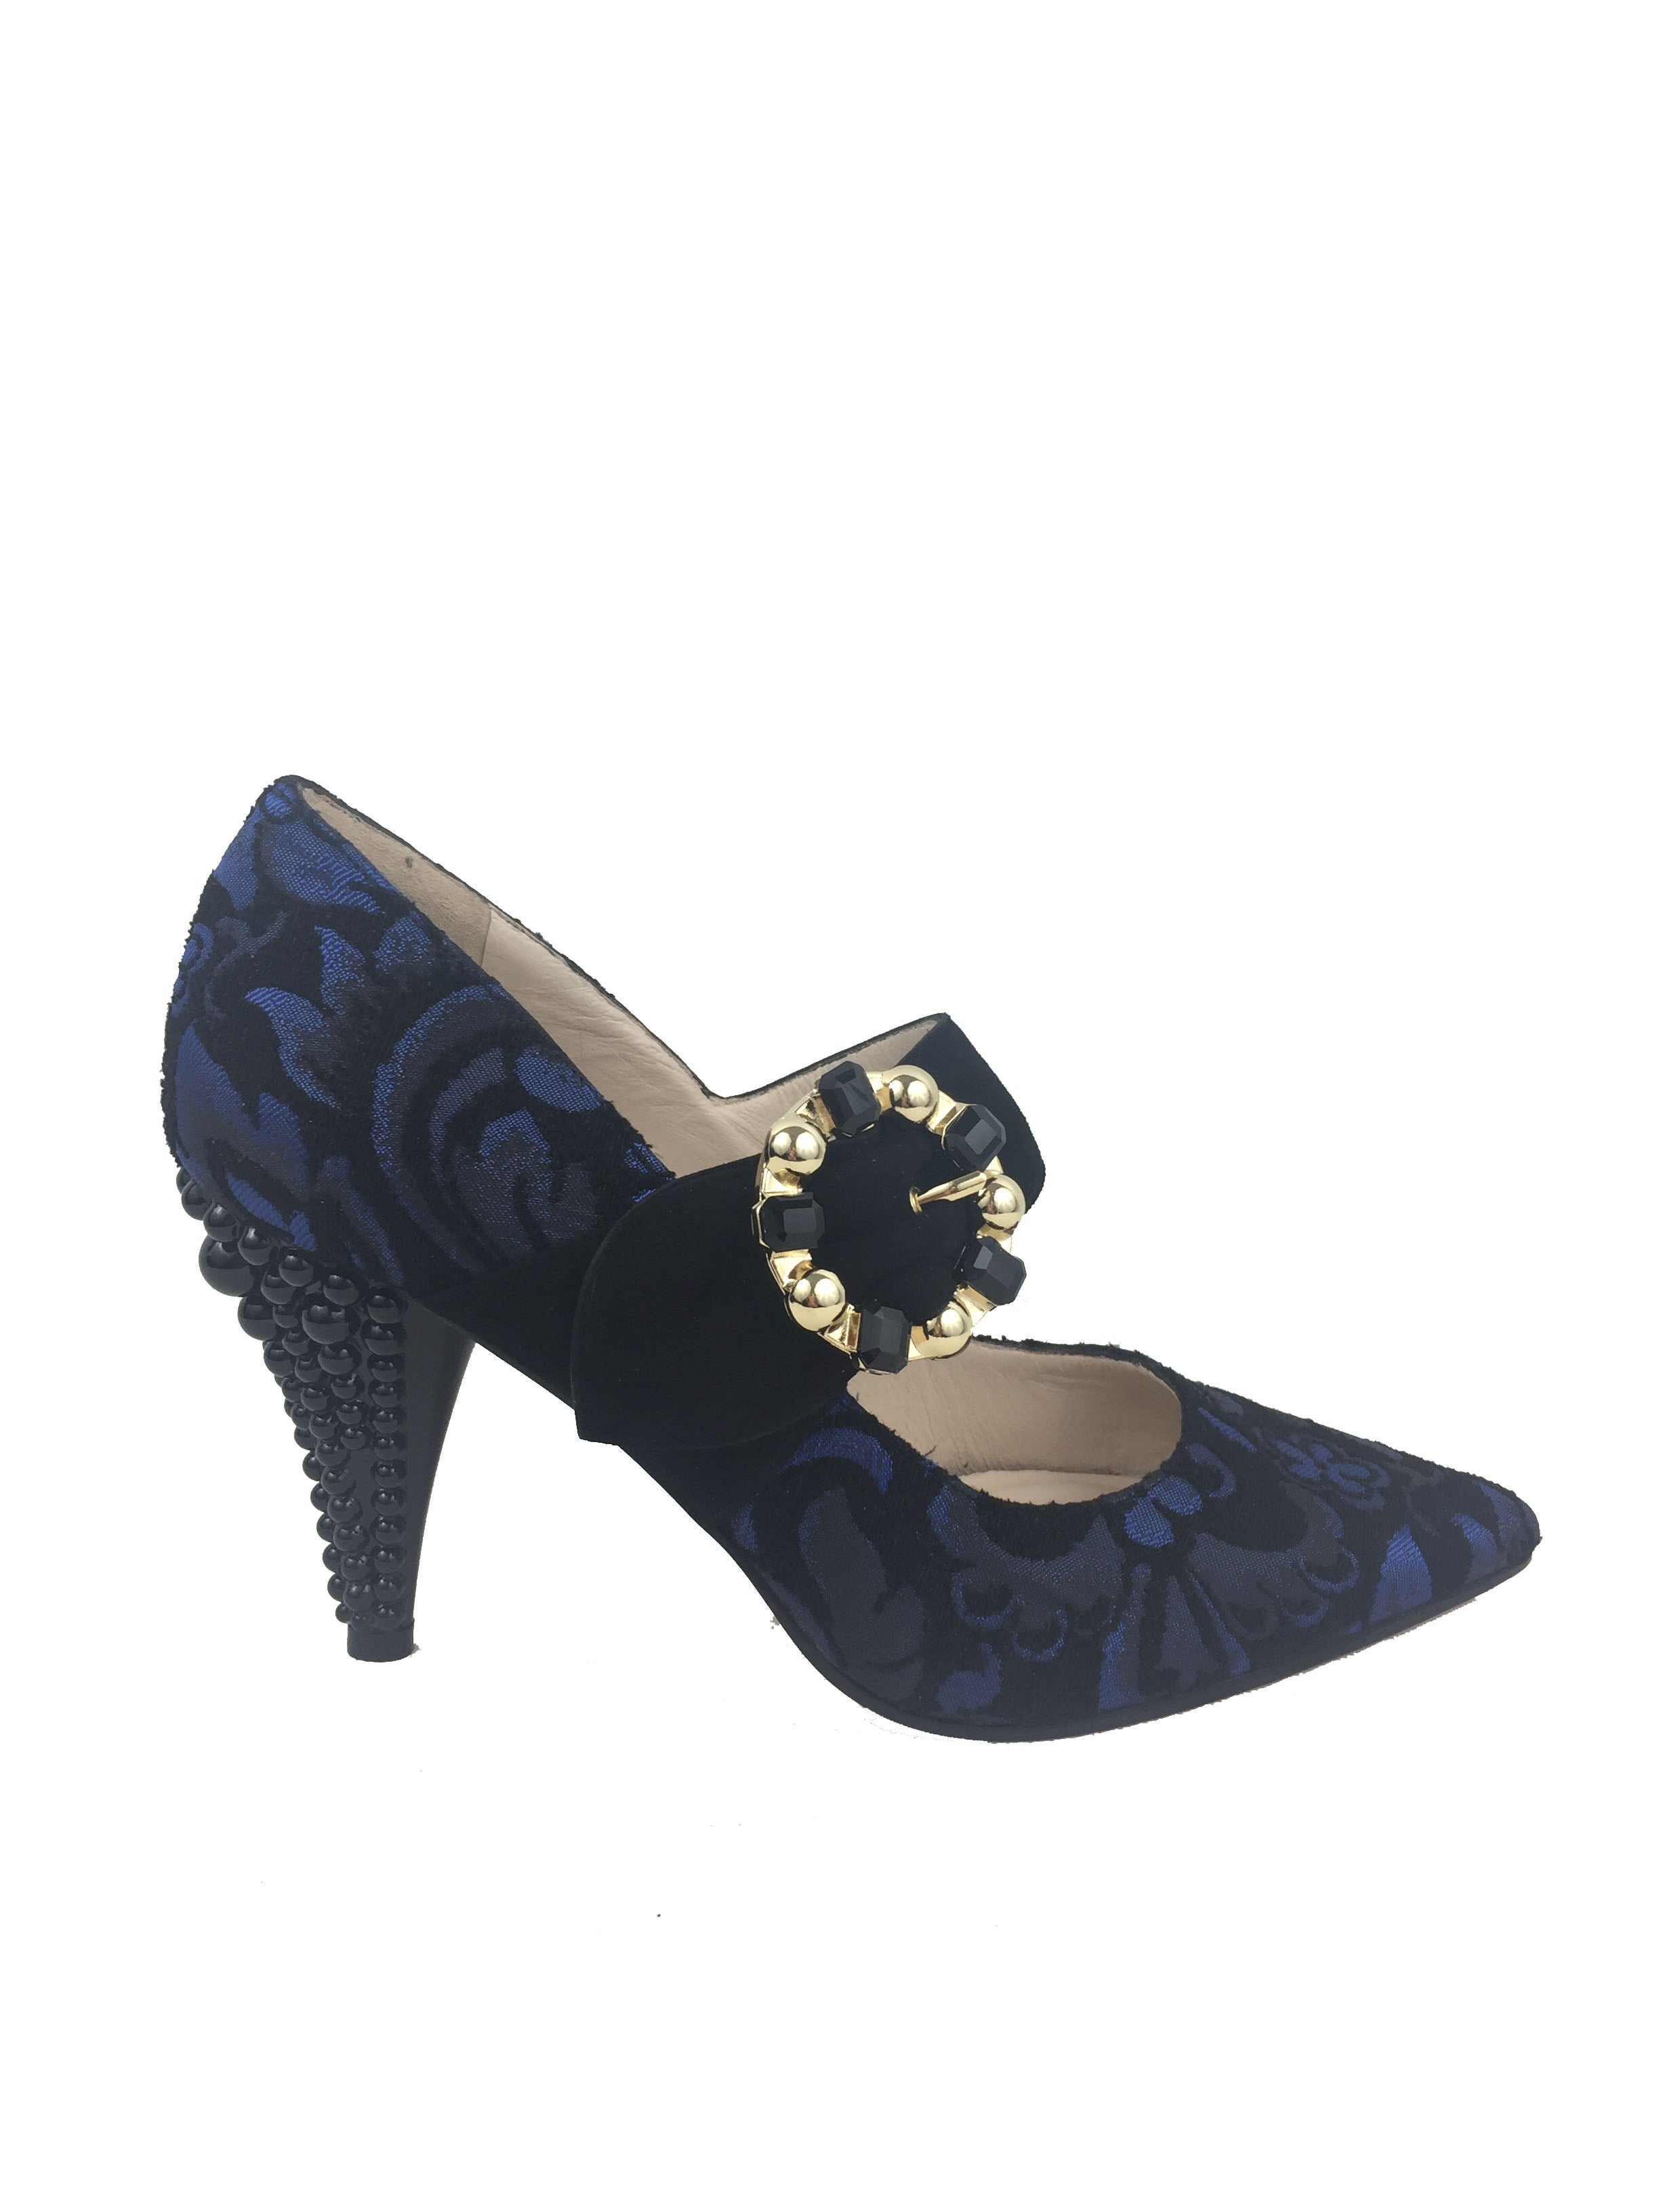 Lodi black and blue gucci heels